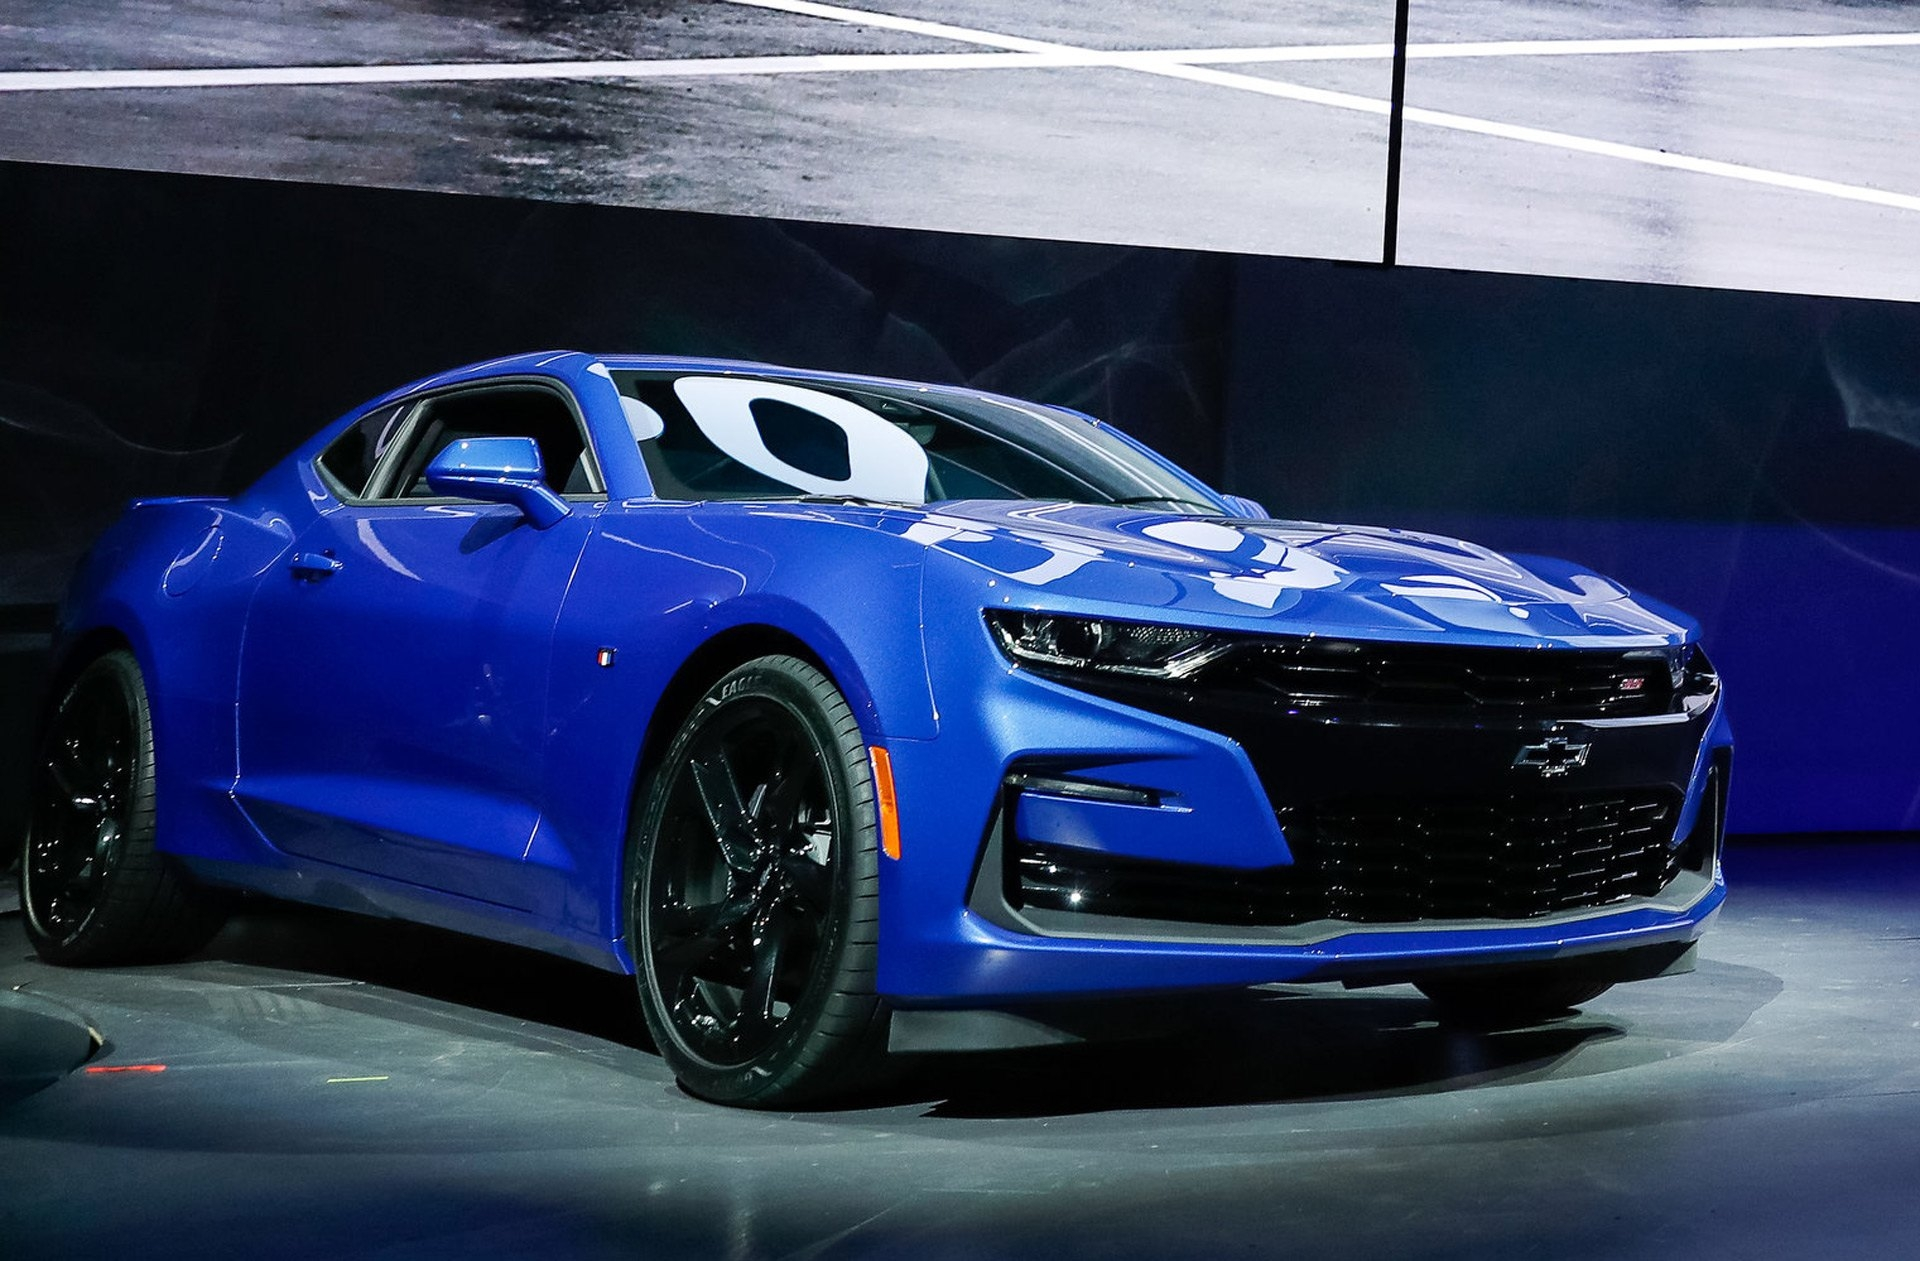 72 All New 2020 Chevy Camaro Competition Arrival Style